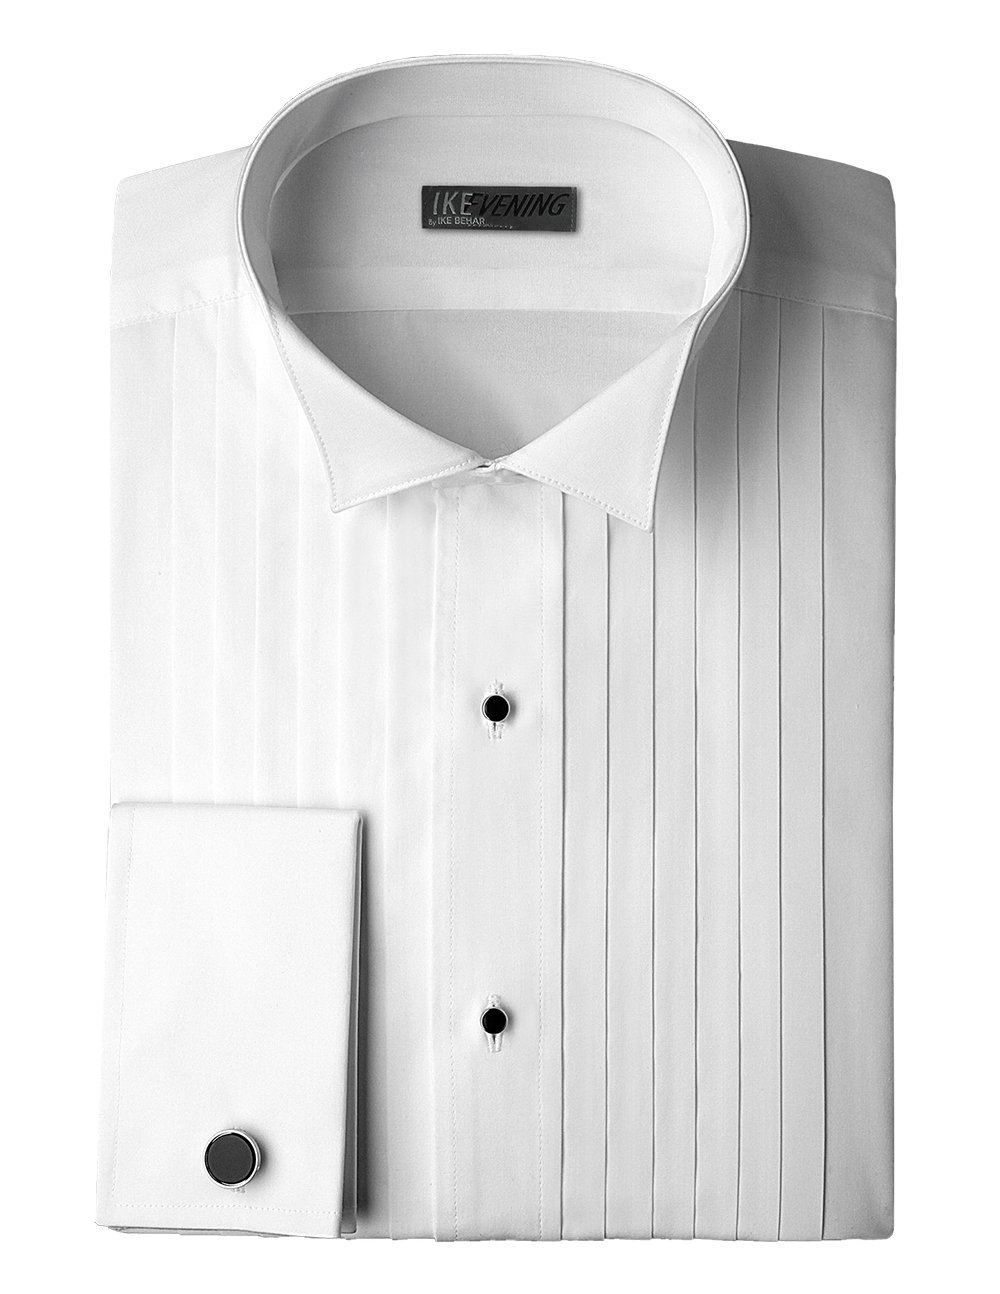 Ike Behar Traditional Fit 100% Woven Cotton Tuxedo Shirt with French Cuffs